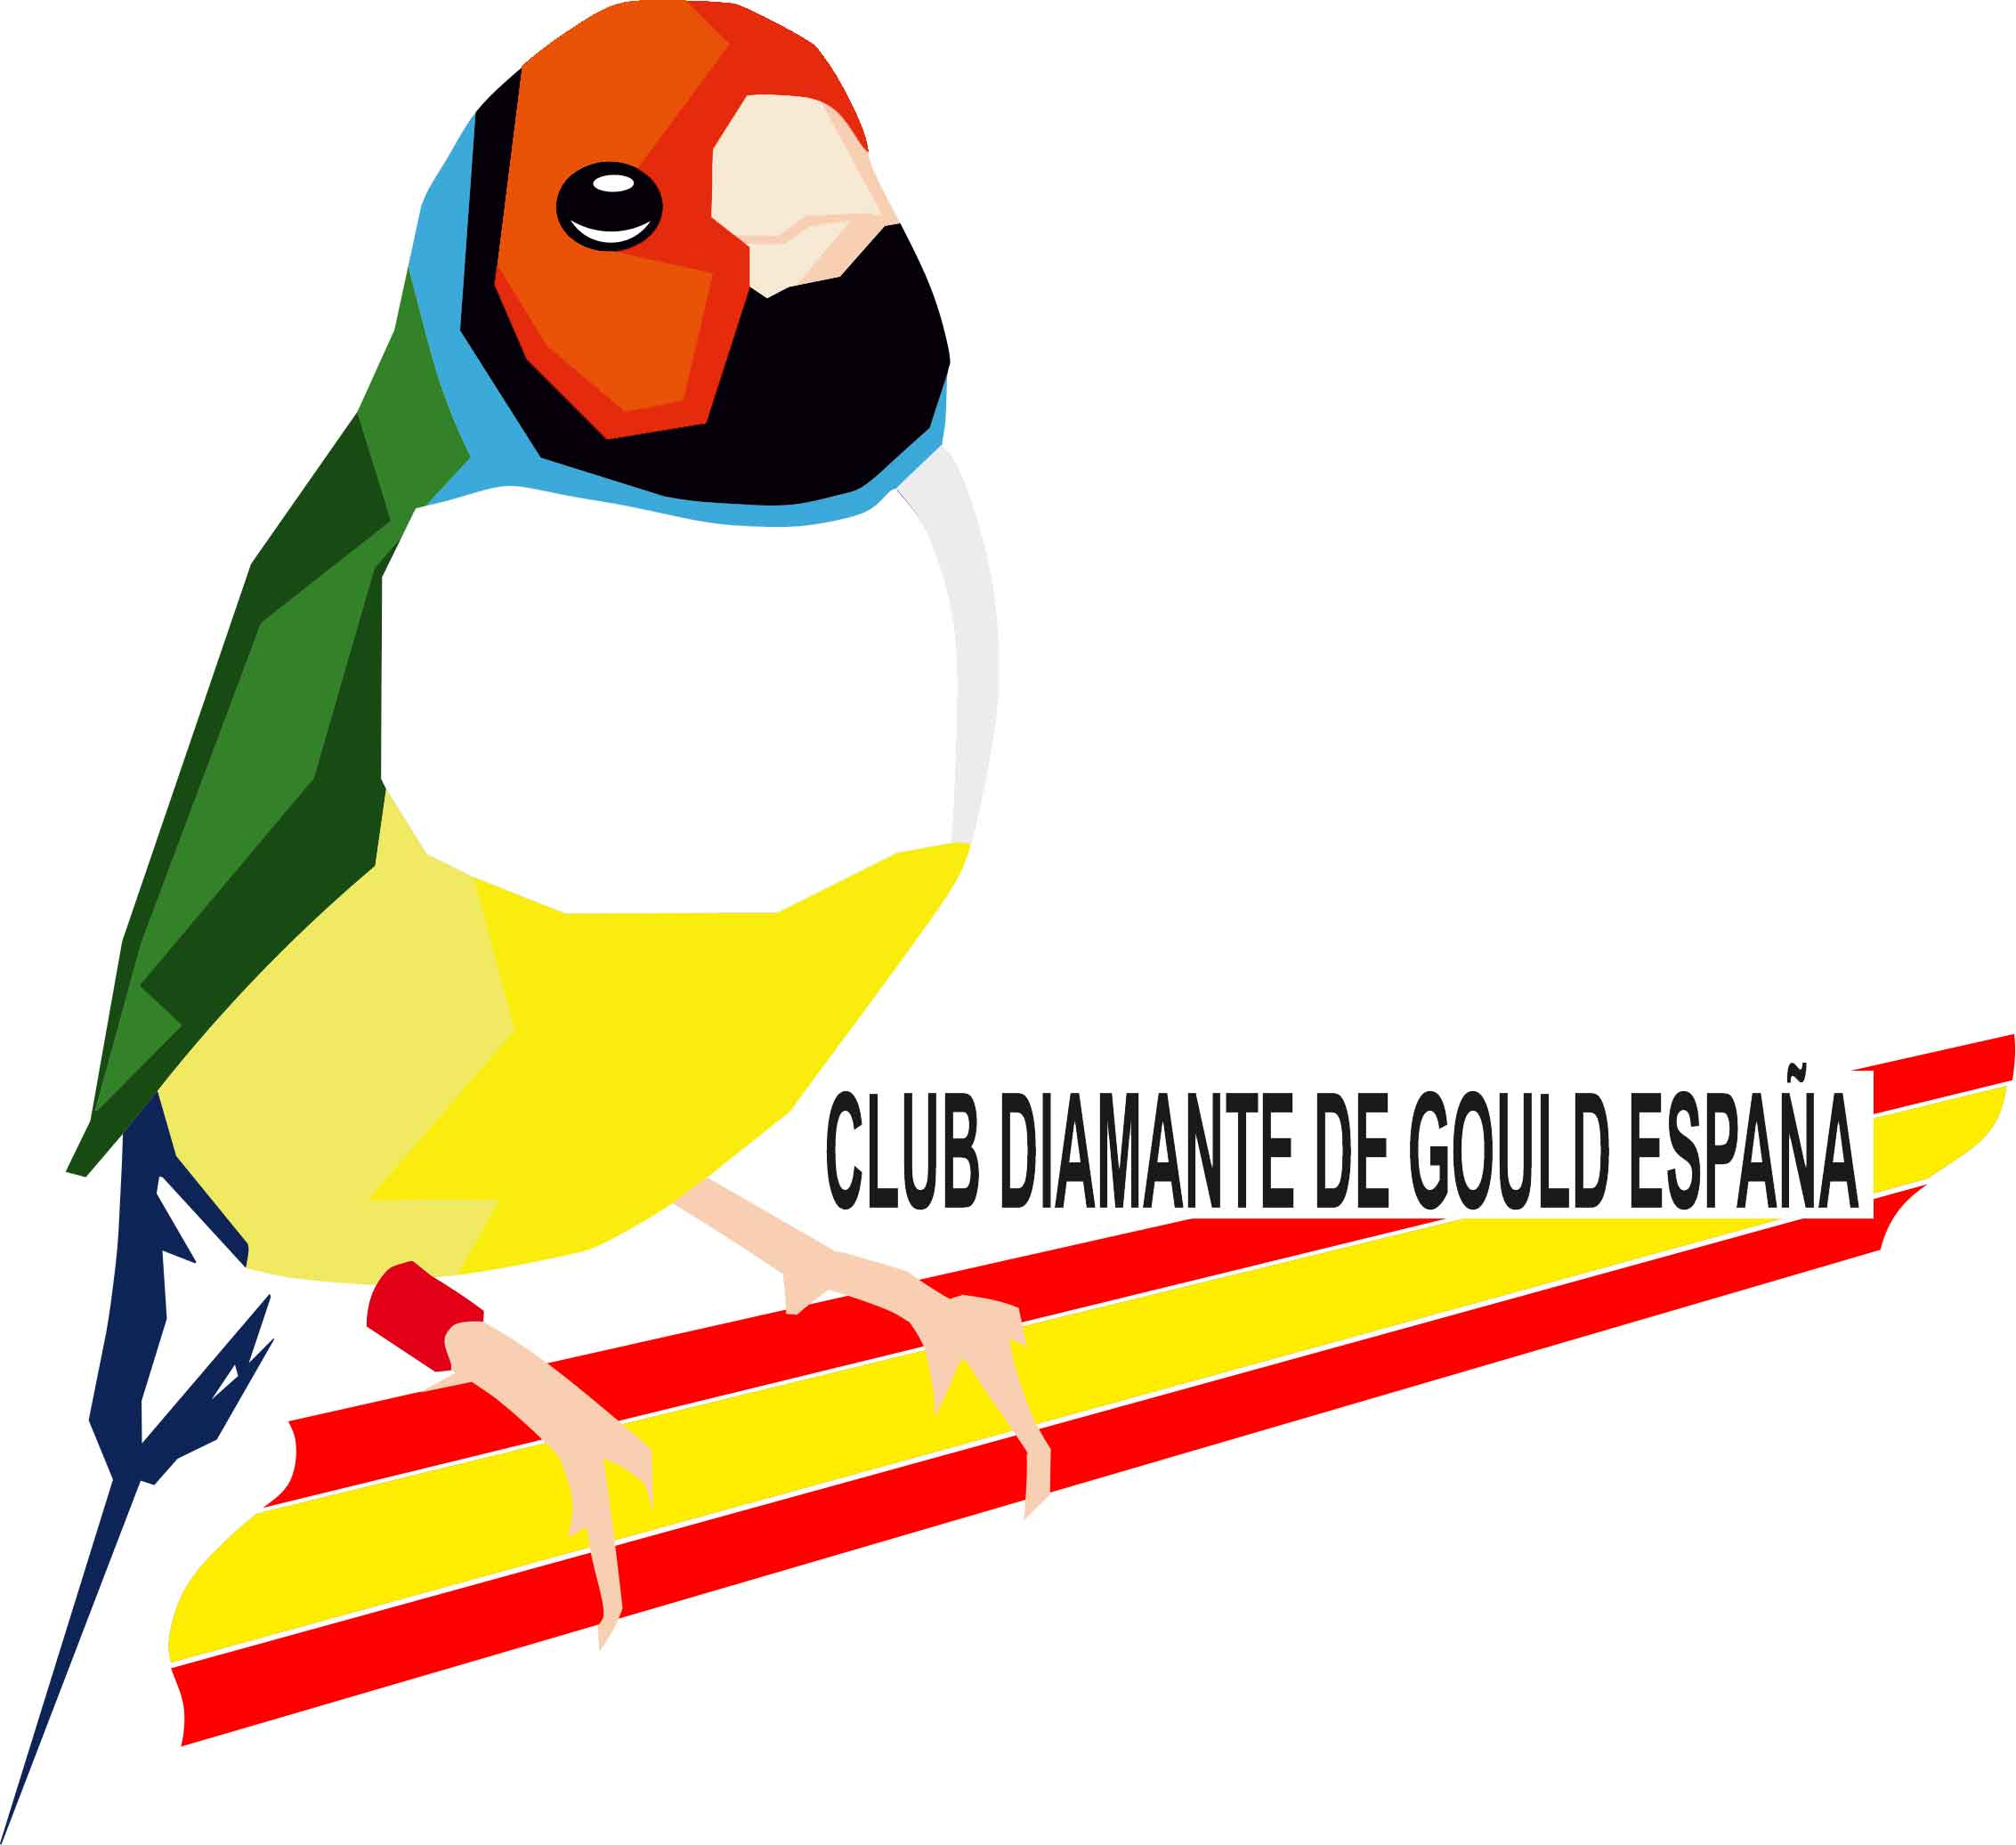 club diamante de gould españa logo